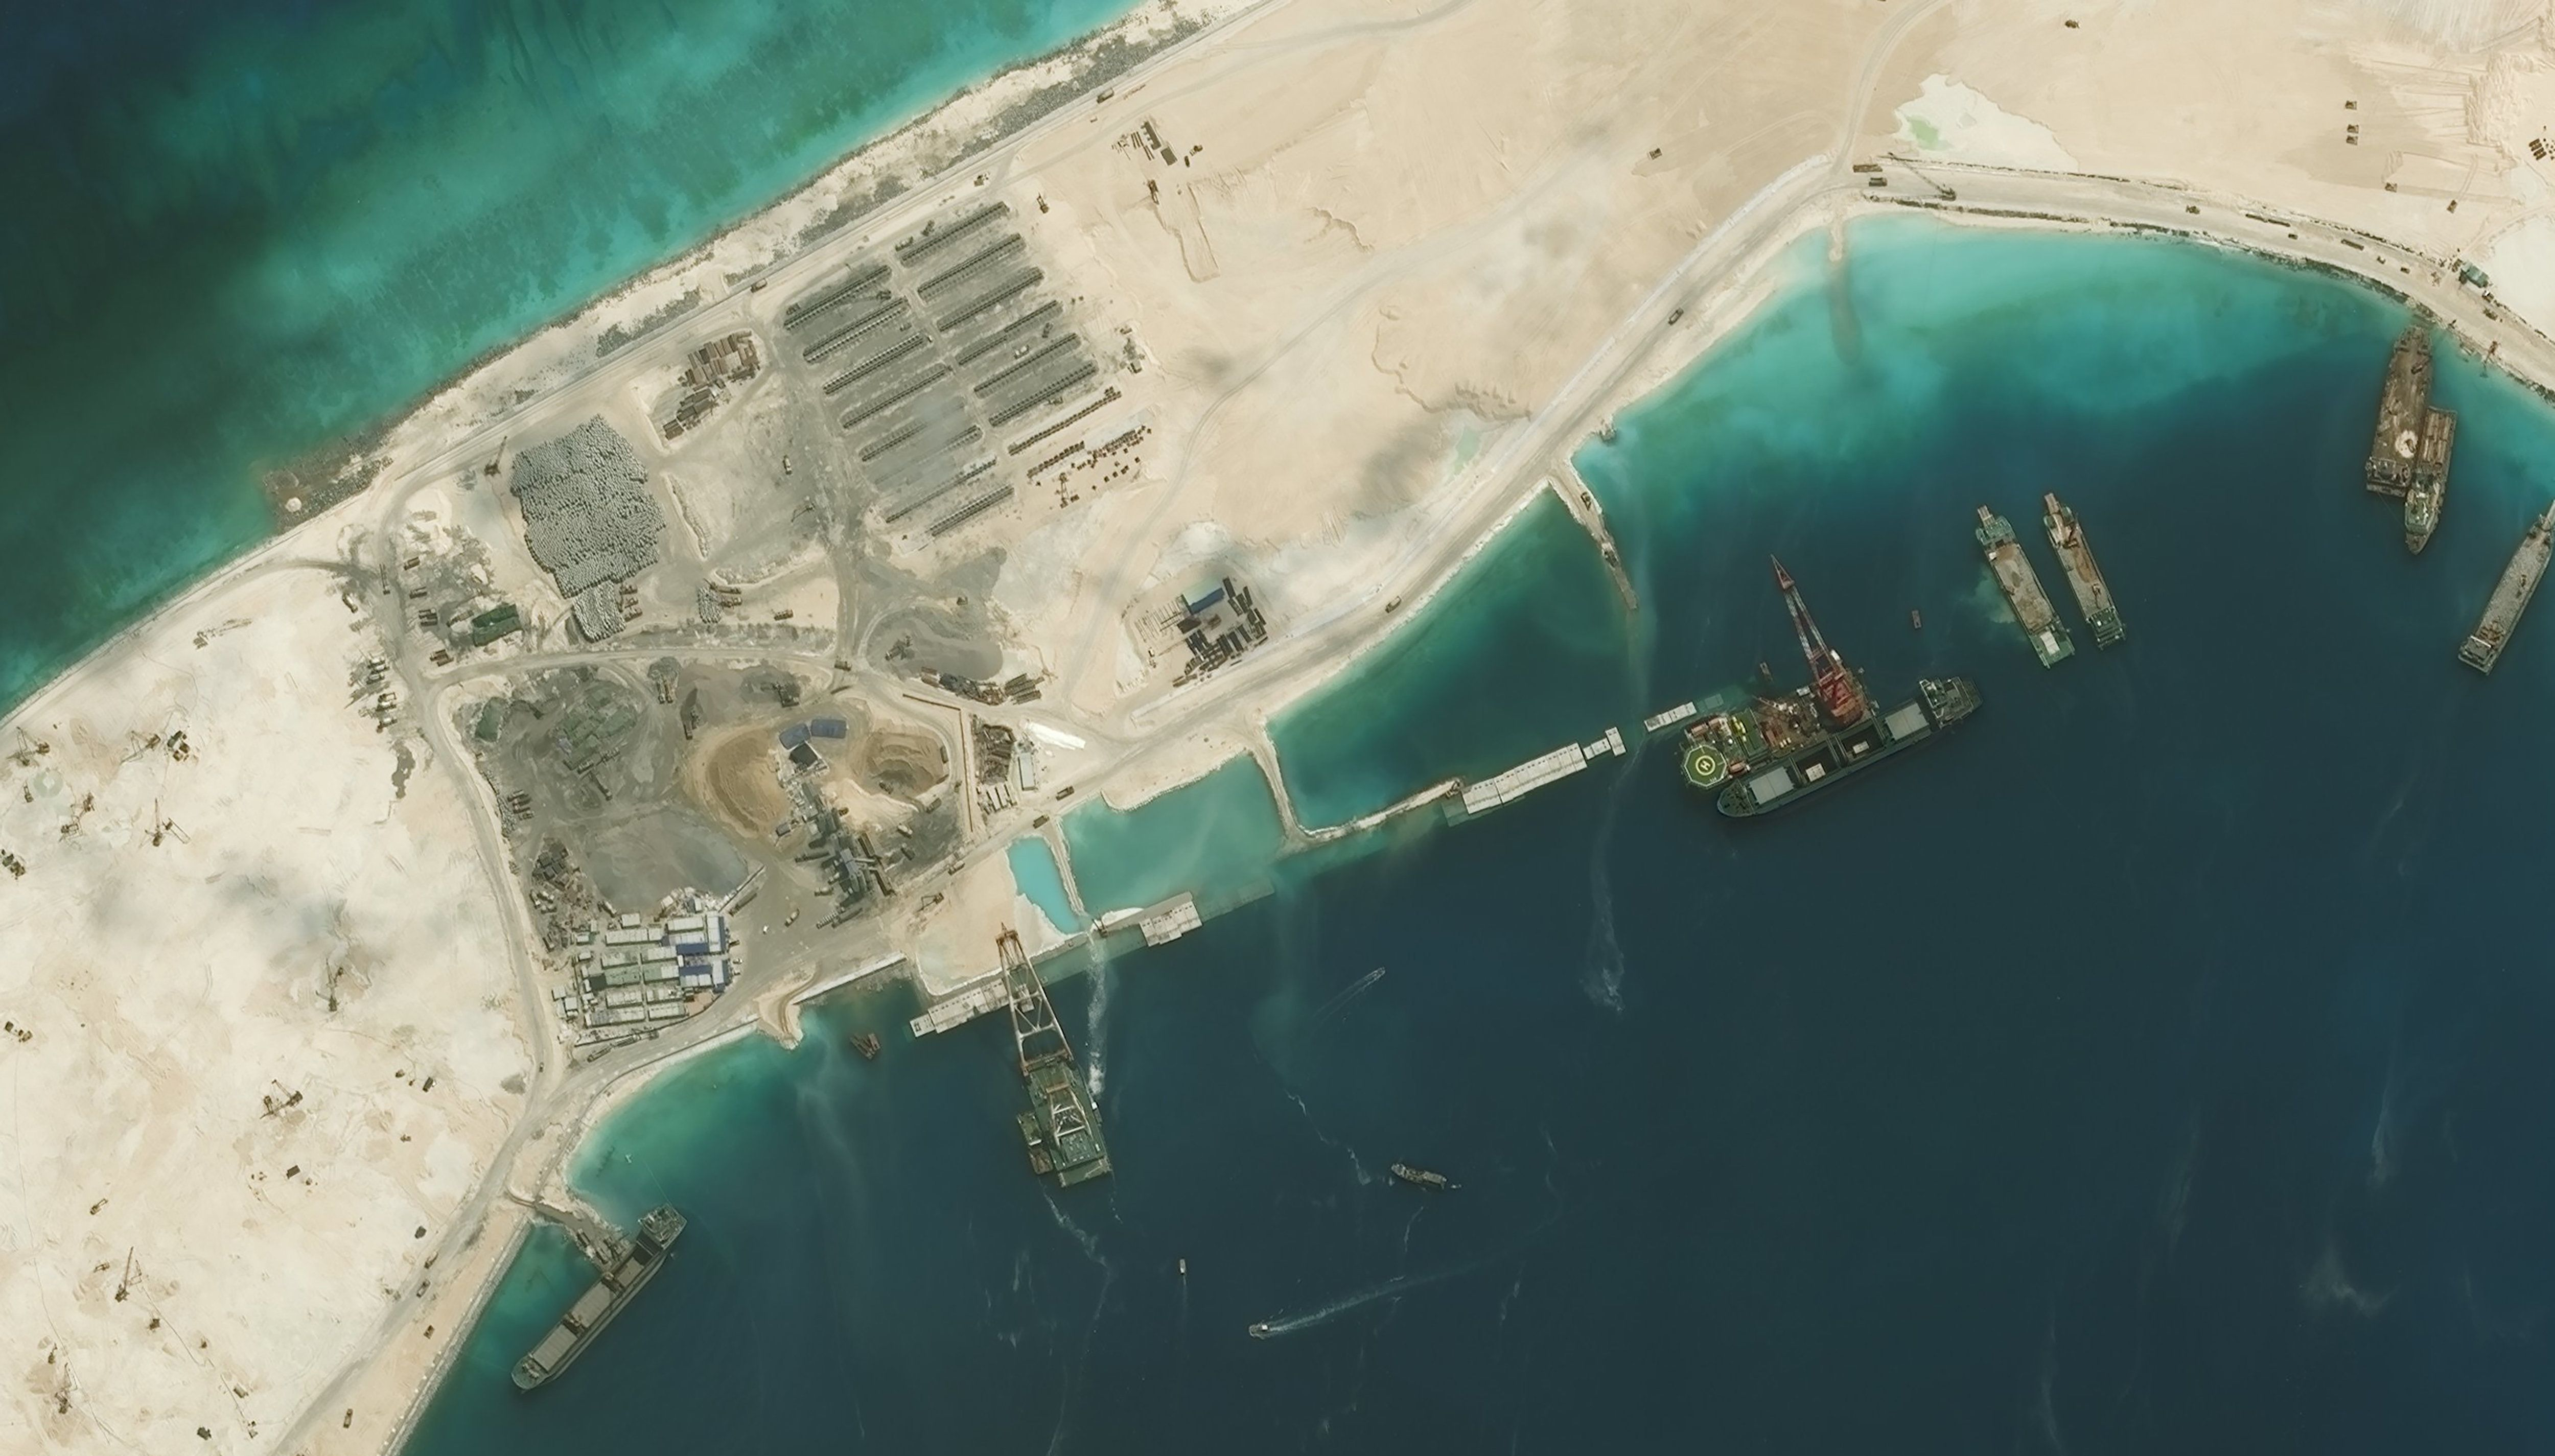 Satellite images show China may be installing a high-frequency radar system in the Spratly Islands.